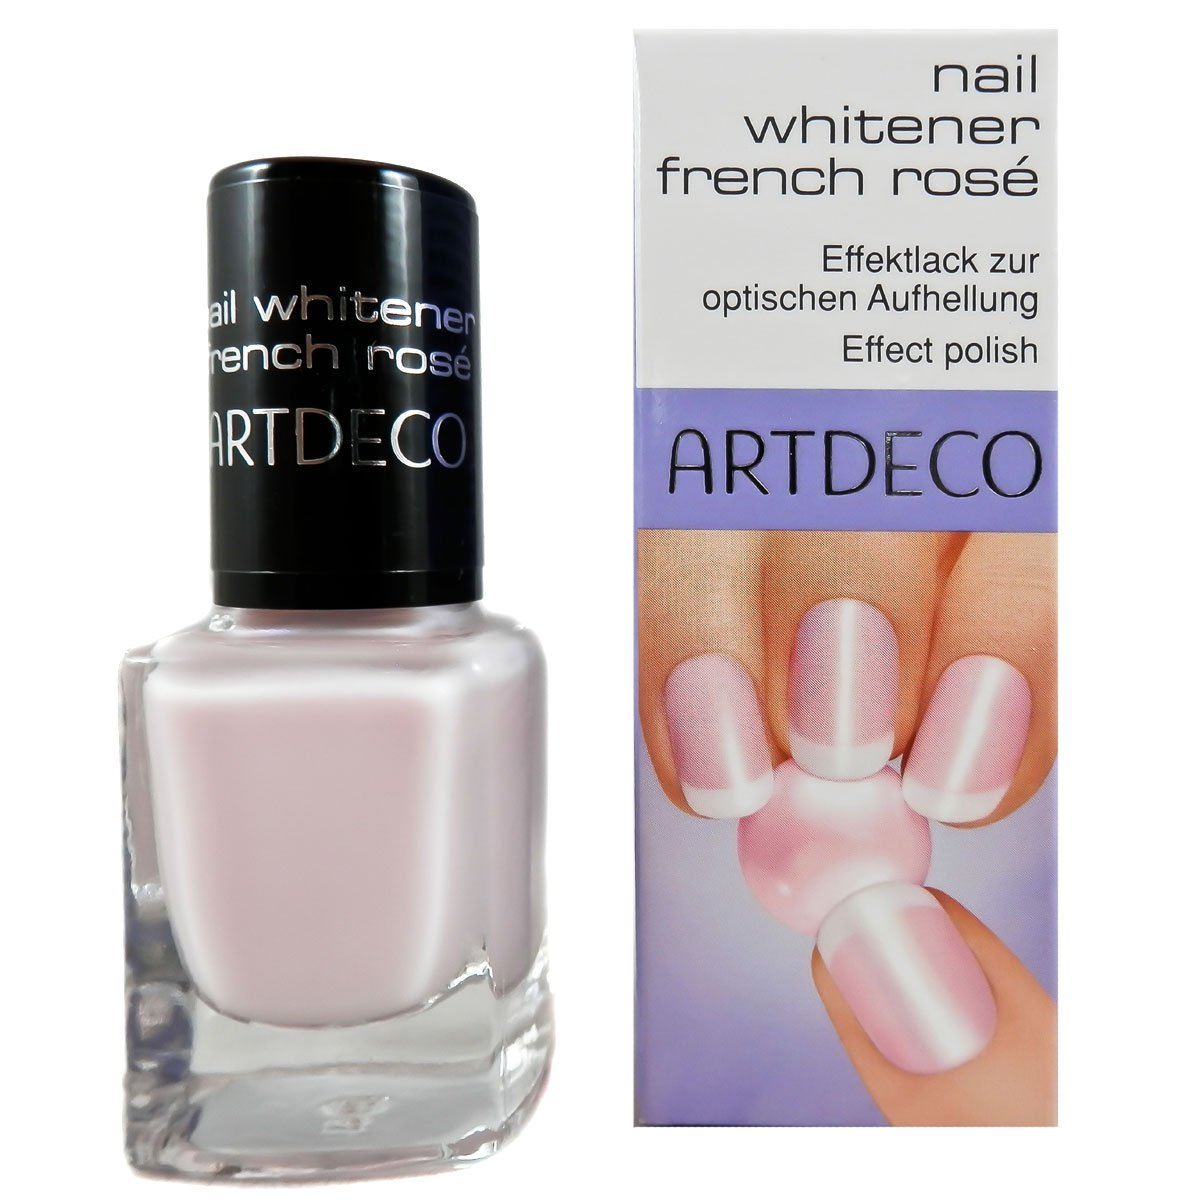 Art Deco Nail whitener French Rose, 1er Pack (1 x 10 ml) Artdeco 4019674618721